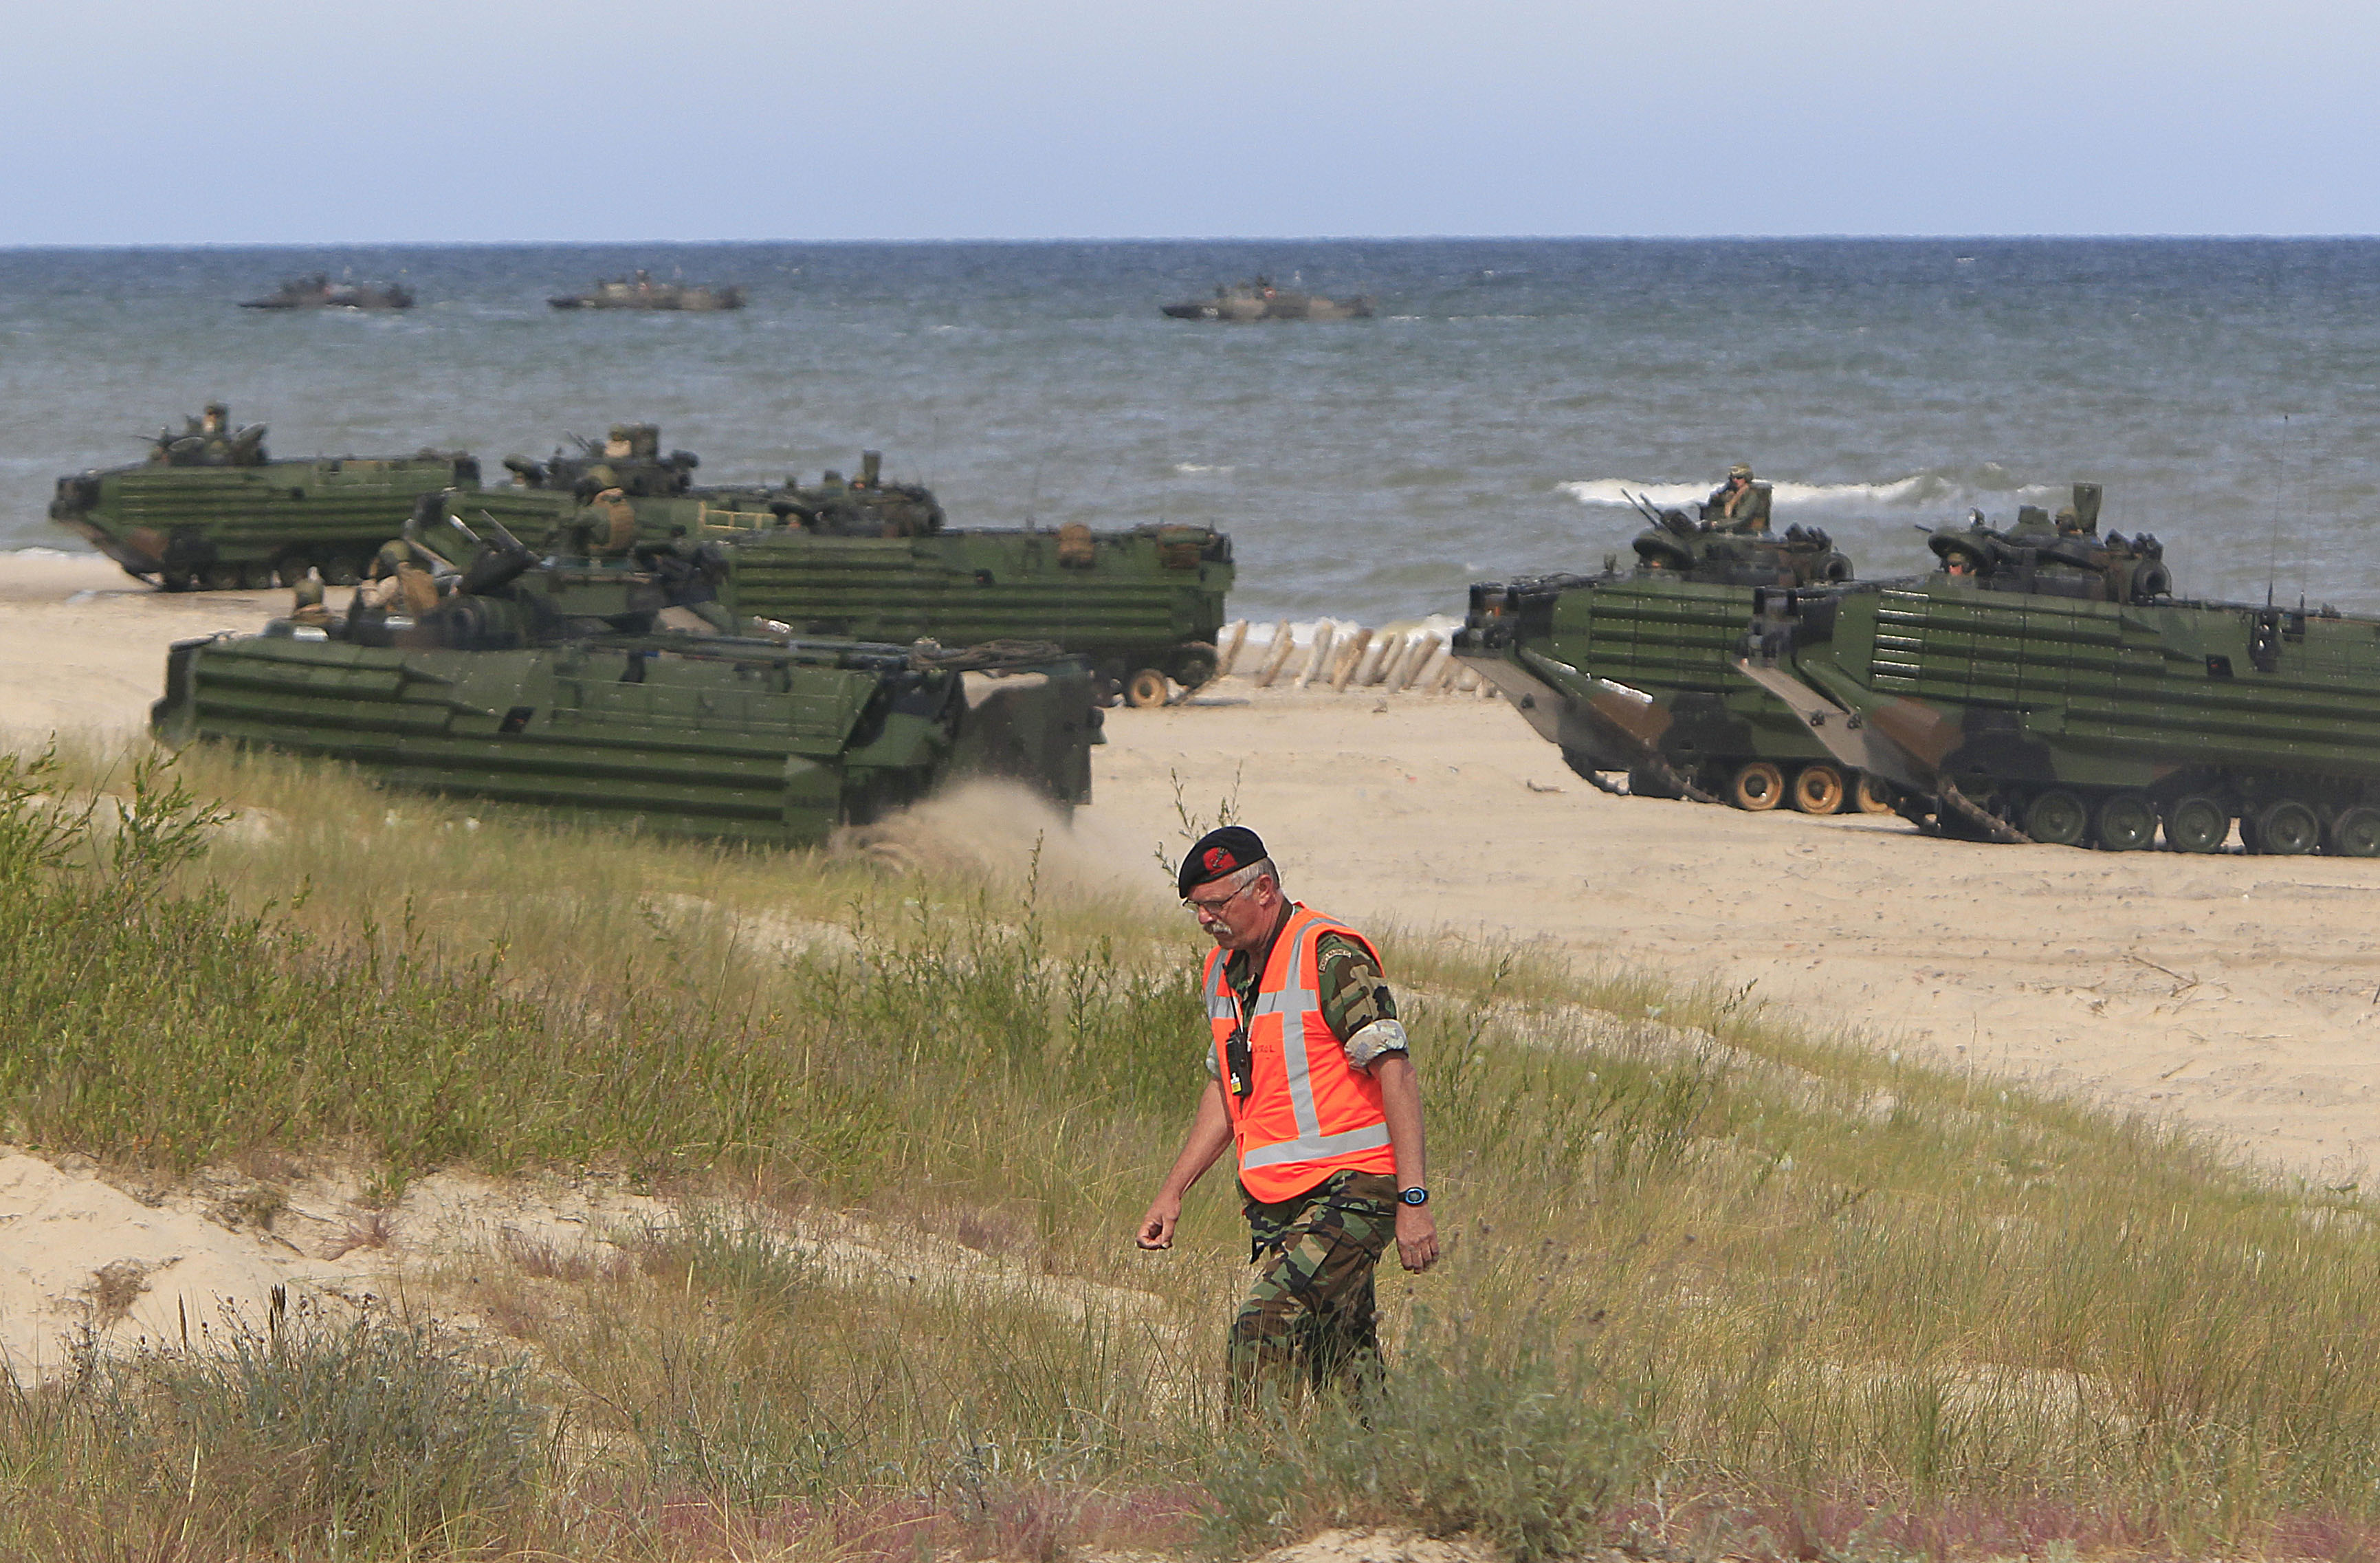 NATO troops make a massive amphibious landing during NATO sea exercises BALTOPS 2015 that are to reassure the Baltic Sea region allies in the face of a resurgent Russia, in Ustka, Poland, June 17, 2015.